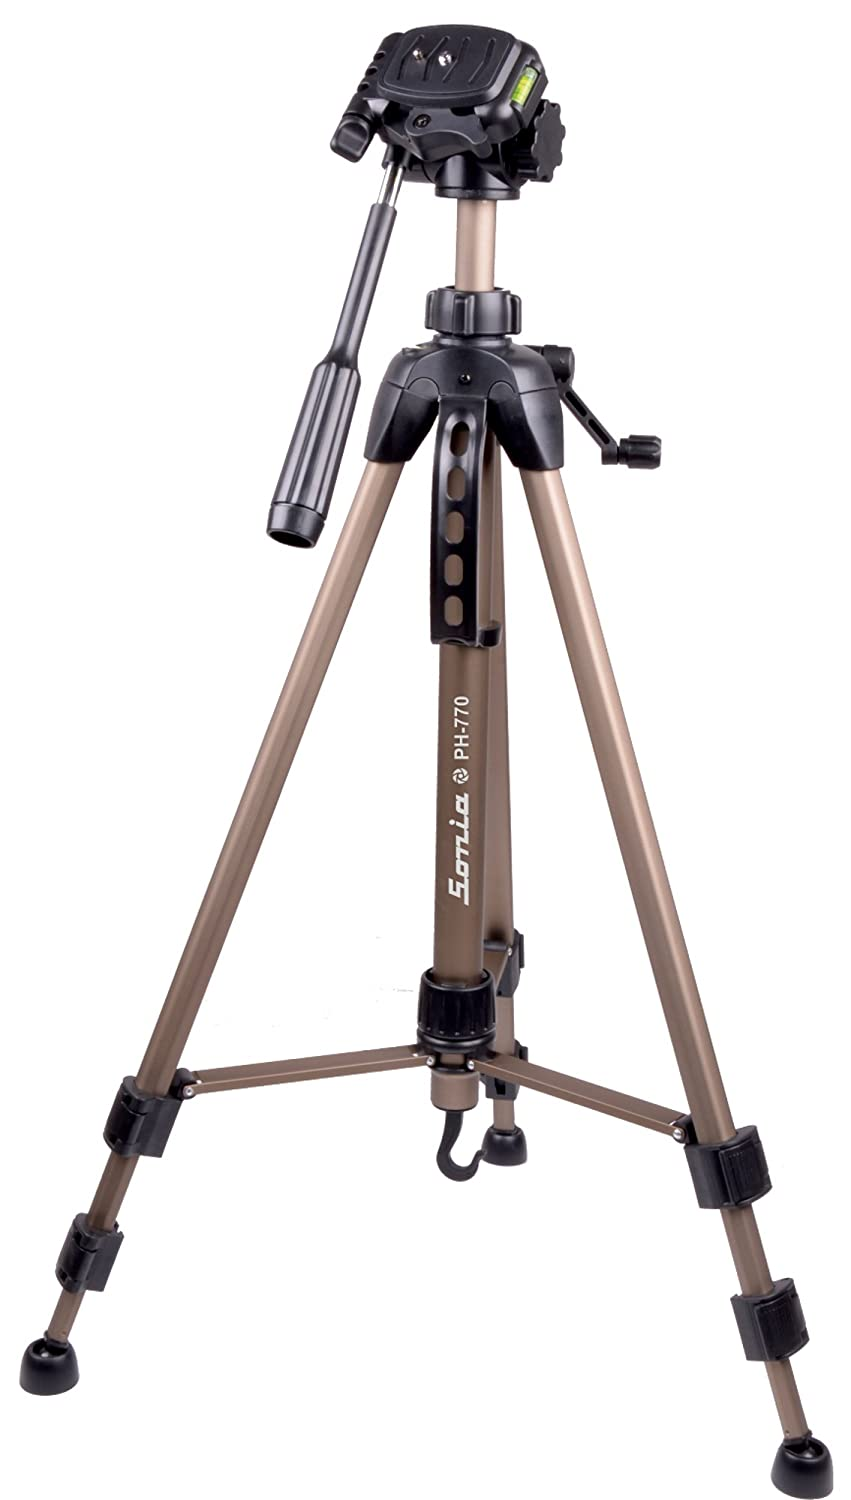 Sonia PH 770 Tripod with Bag for Digital SLR   Video Cameras  Load Capacity 3500 Grams  Complete Tripod Units